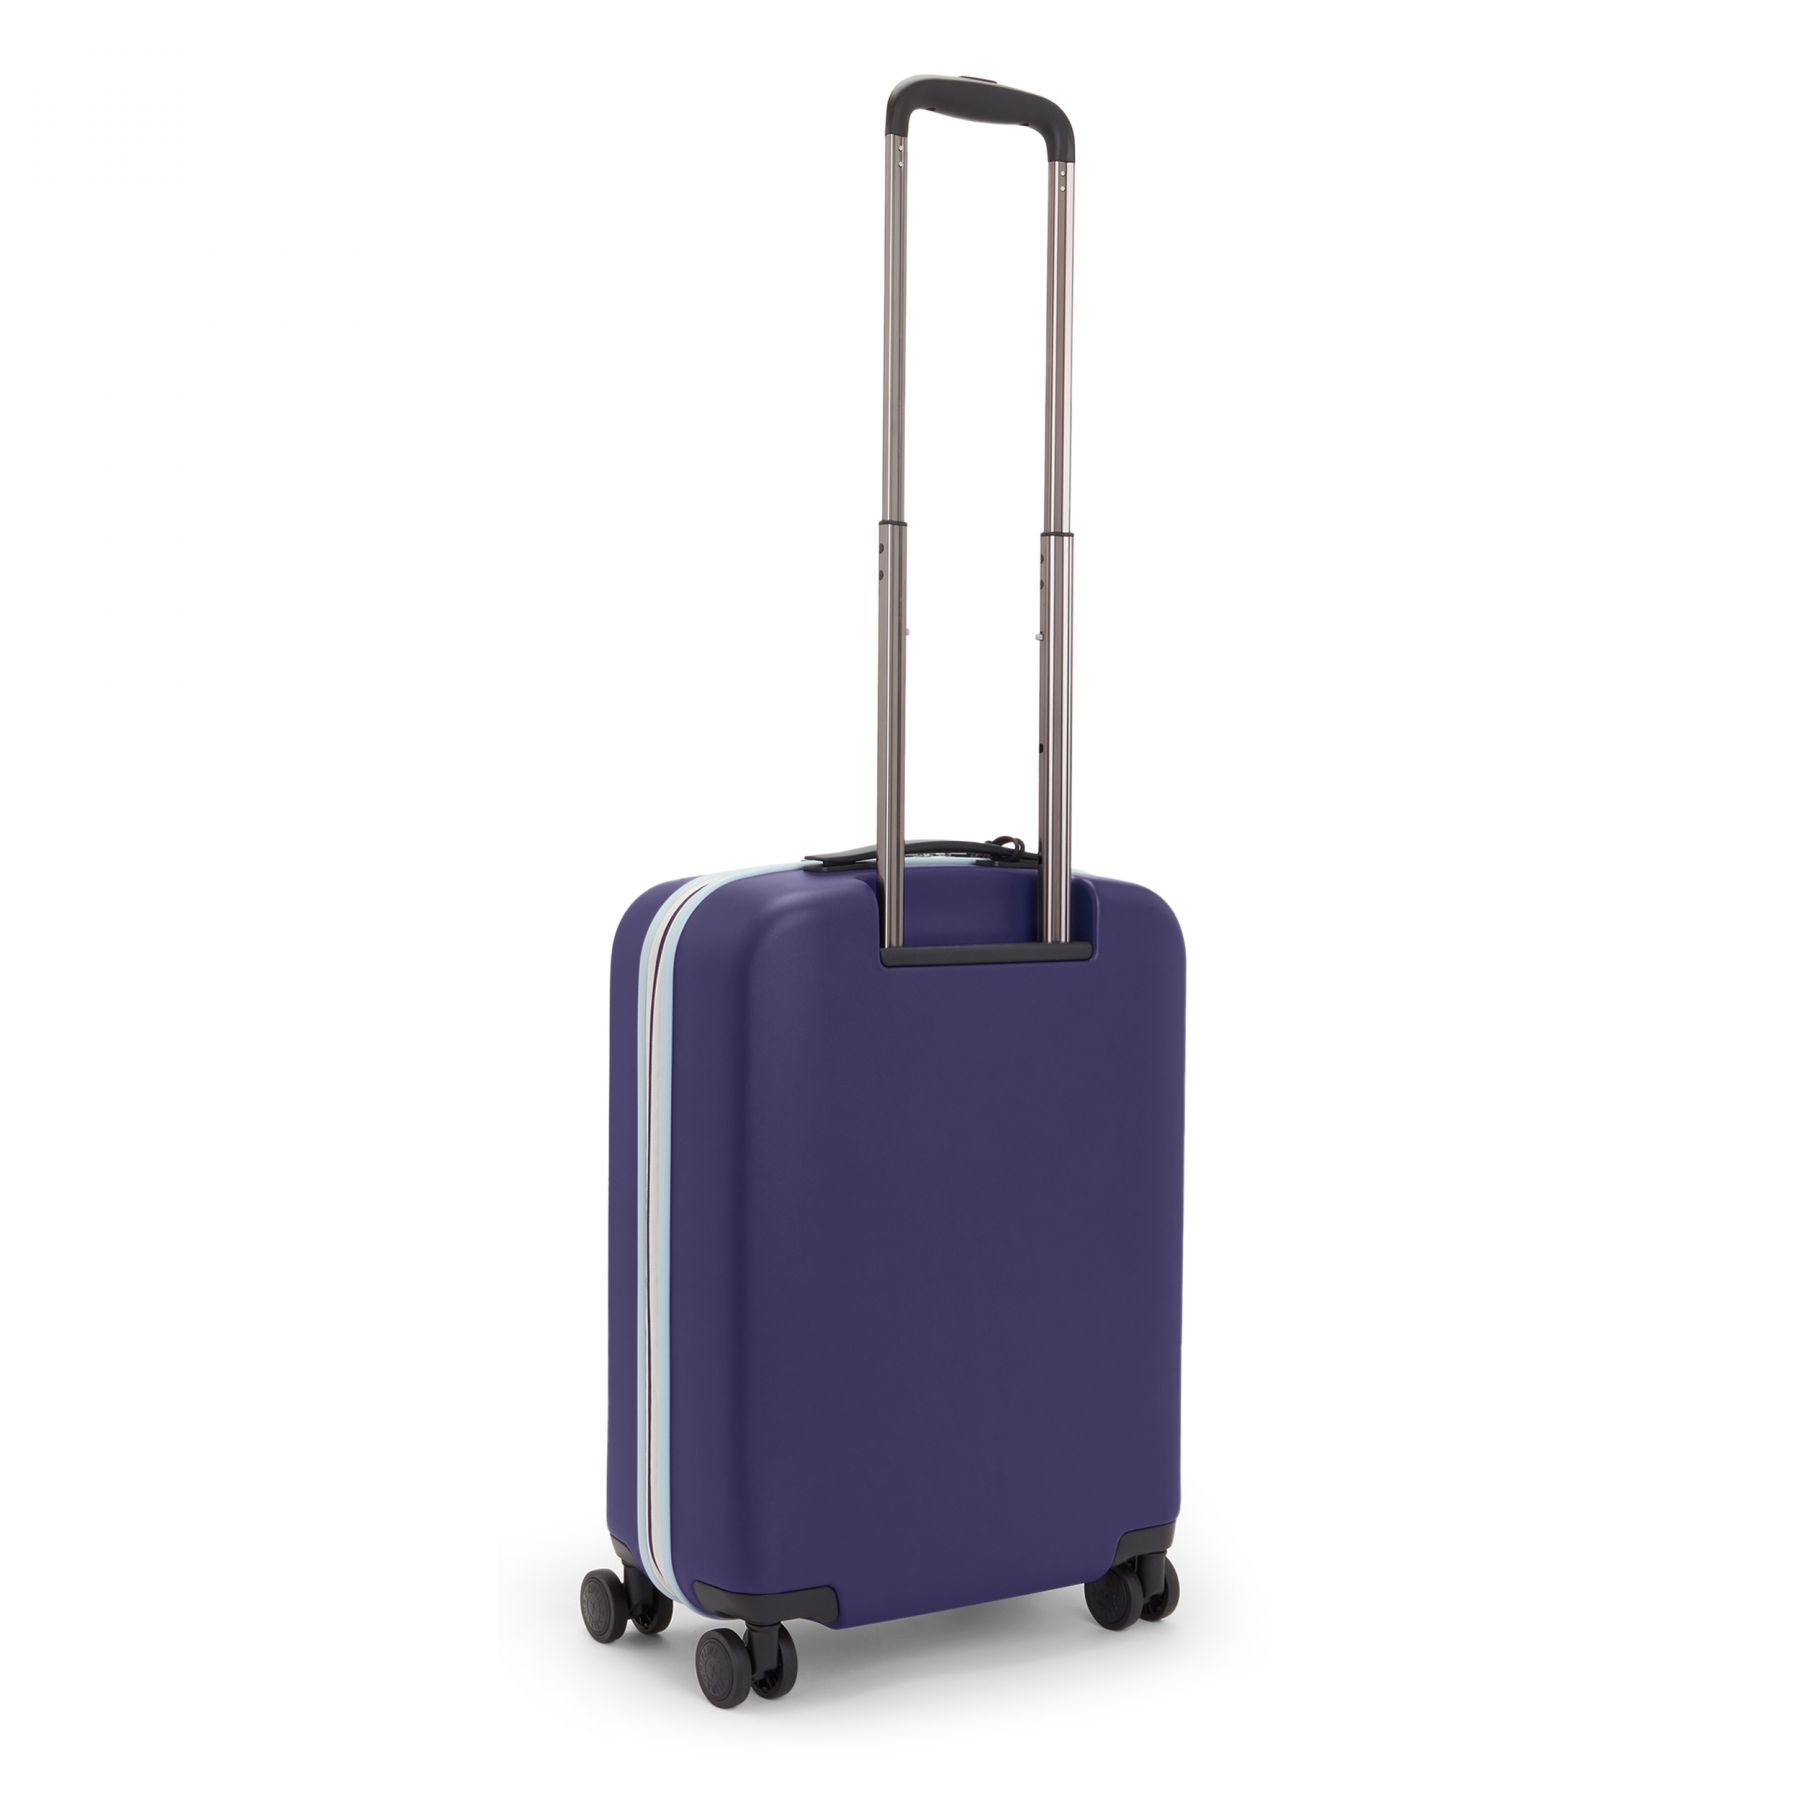 CURIOSITY S LUGGAGE by Kipling - Back view